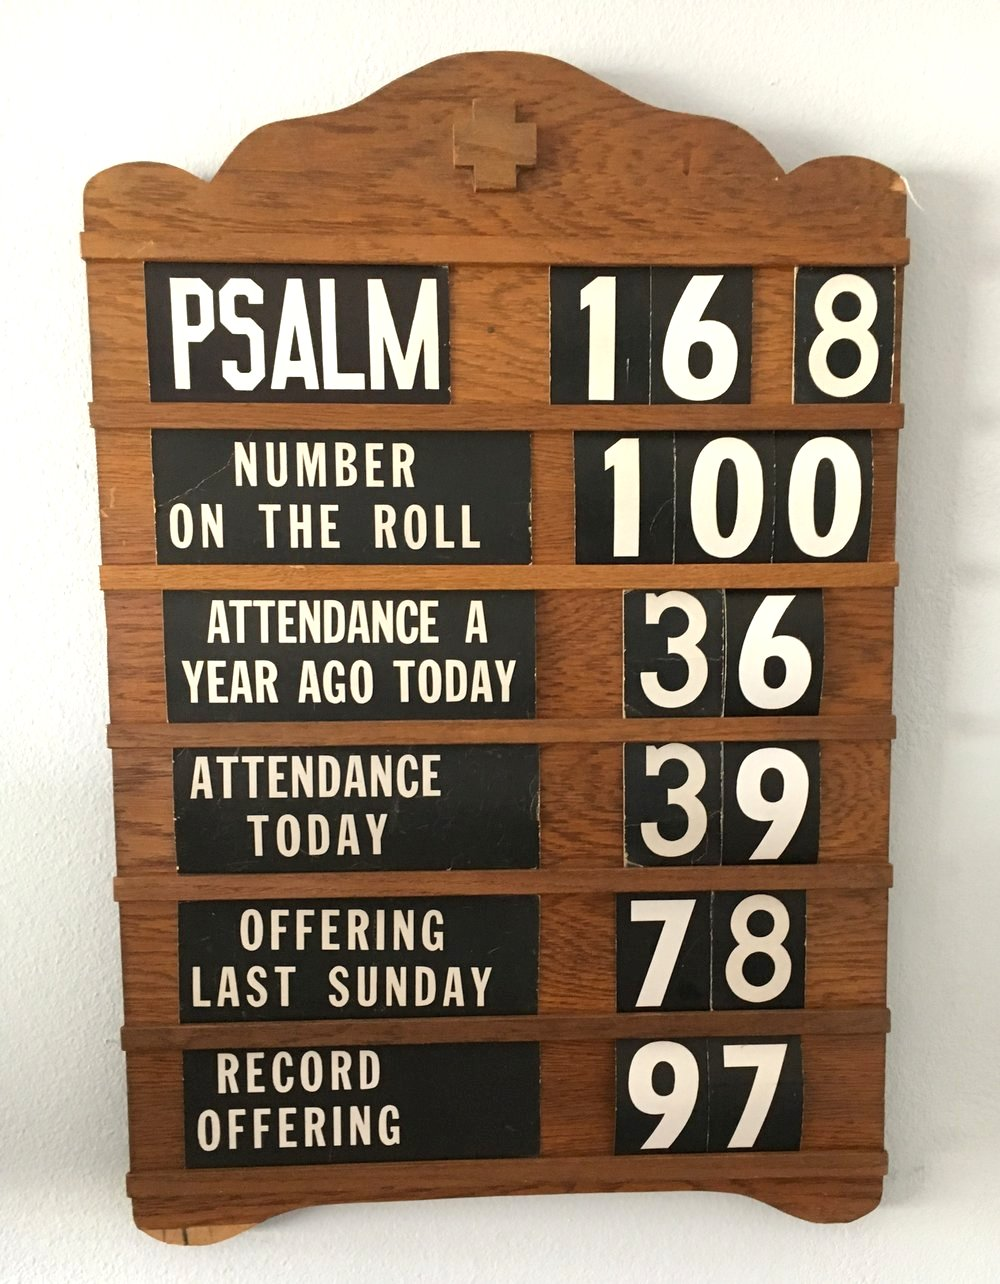 Vintage church register board by Whispers of the Heart, featured on Funky Junk Interiors